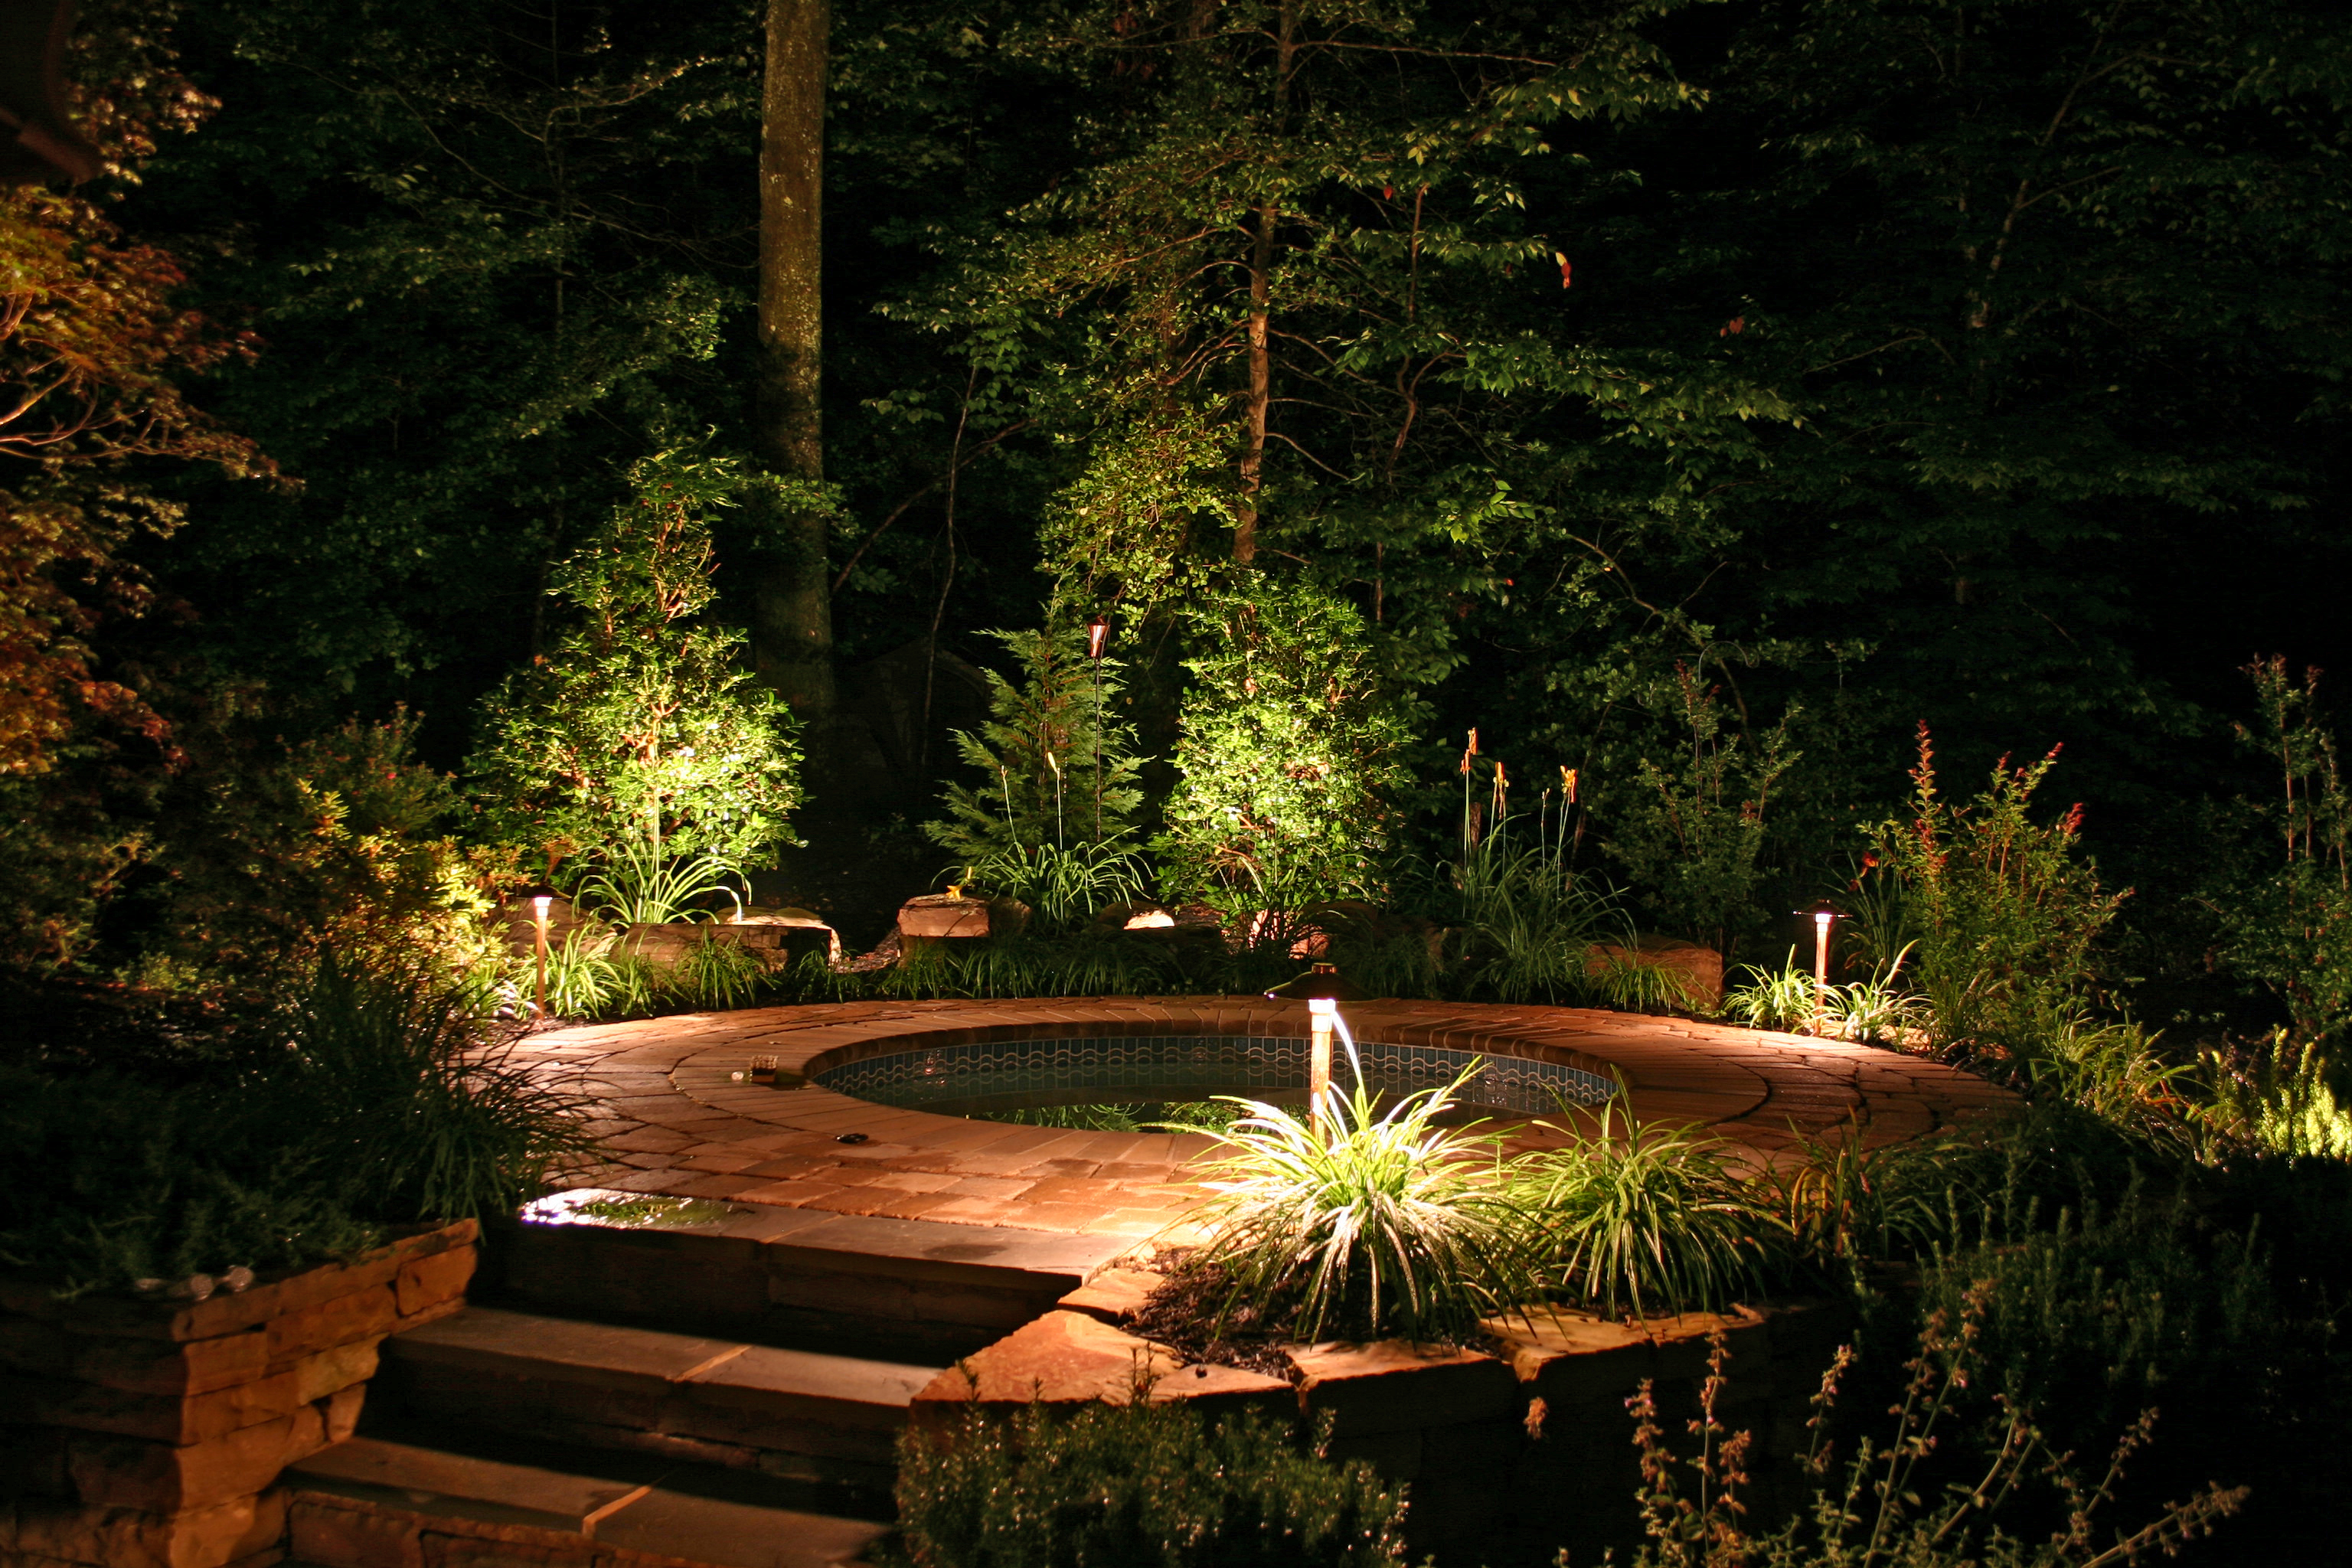 Low Voltage Led Outdoor Lighting Systems Pool-and-jacuzzi-steps-propery-lit-by-outdoor-lighting